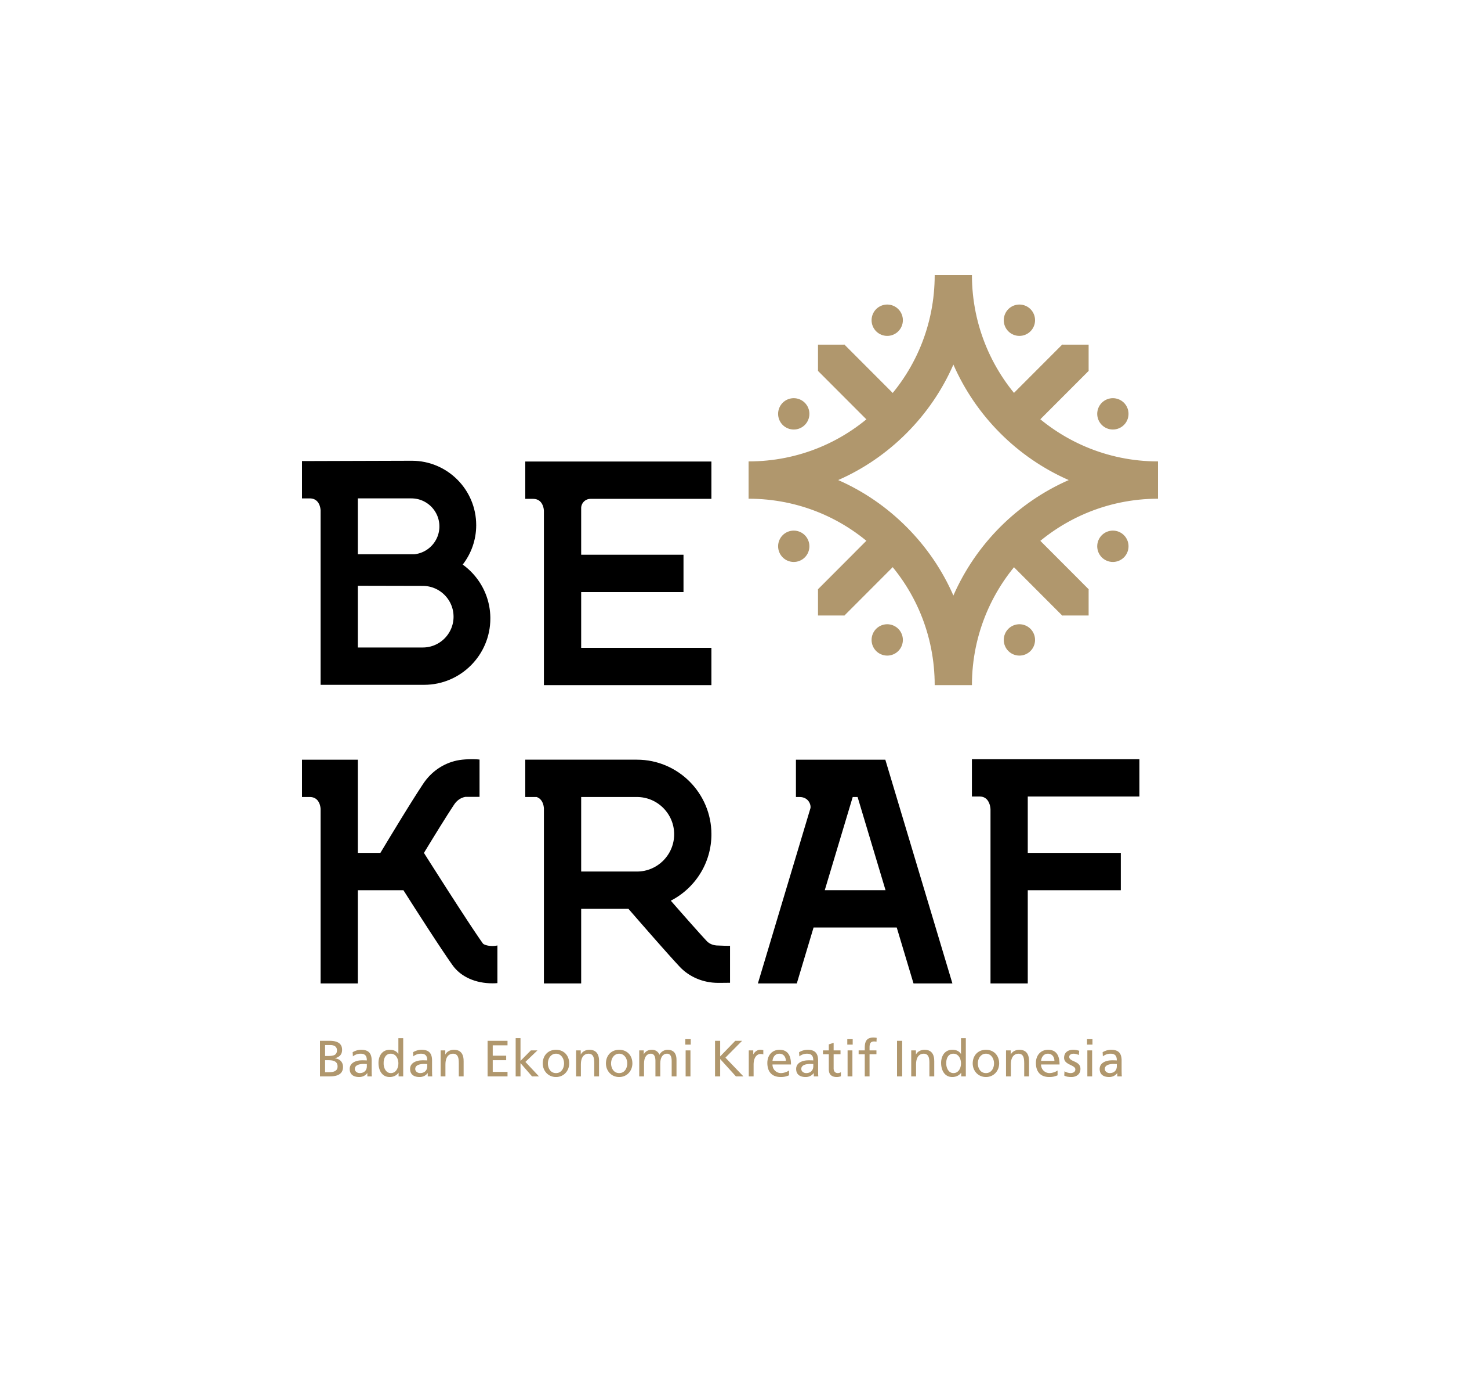 BEKRAF Developer Day 2019 - Malang